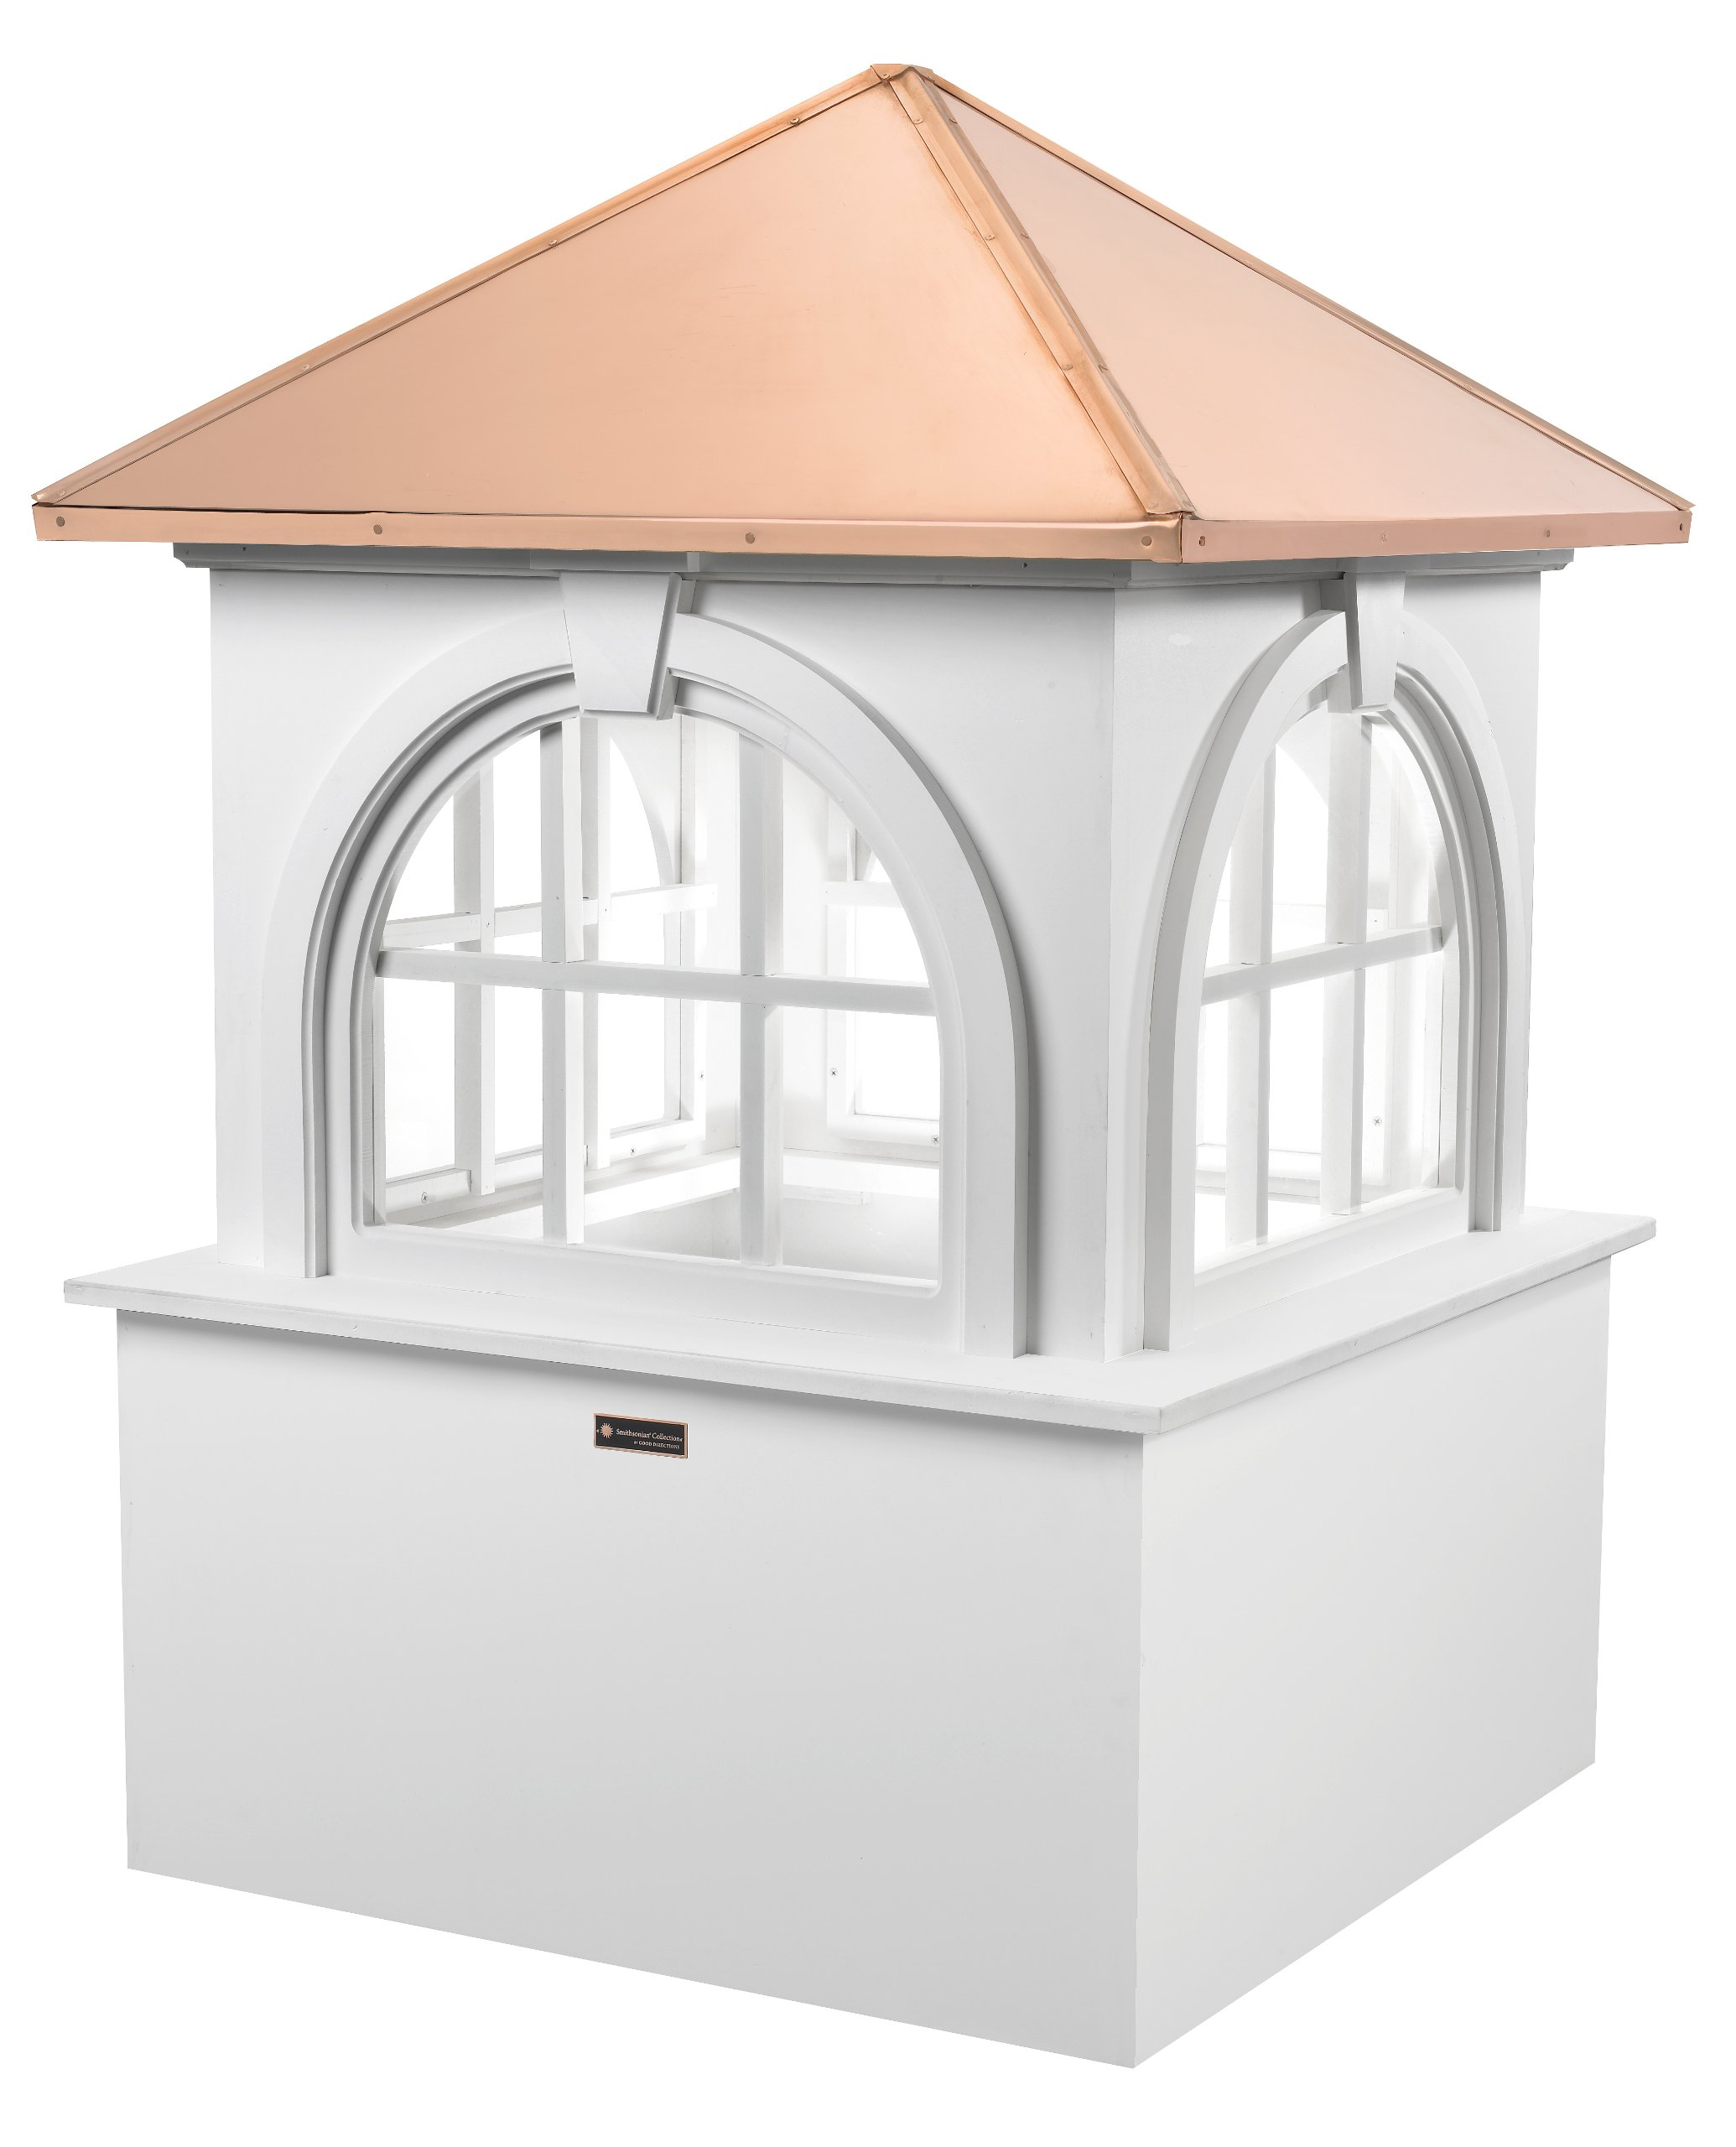 Good Directions Smithsonian Arlington Vinyl Cupola with Copper Roof, 60'' x 88''